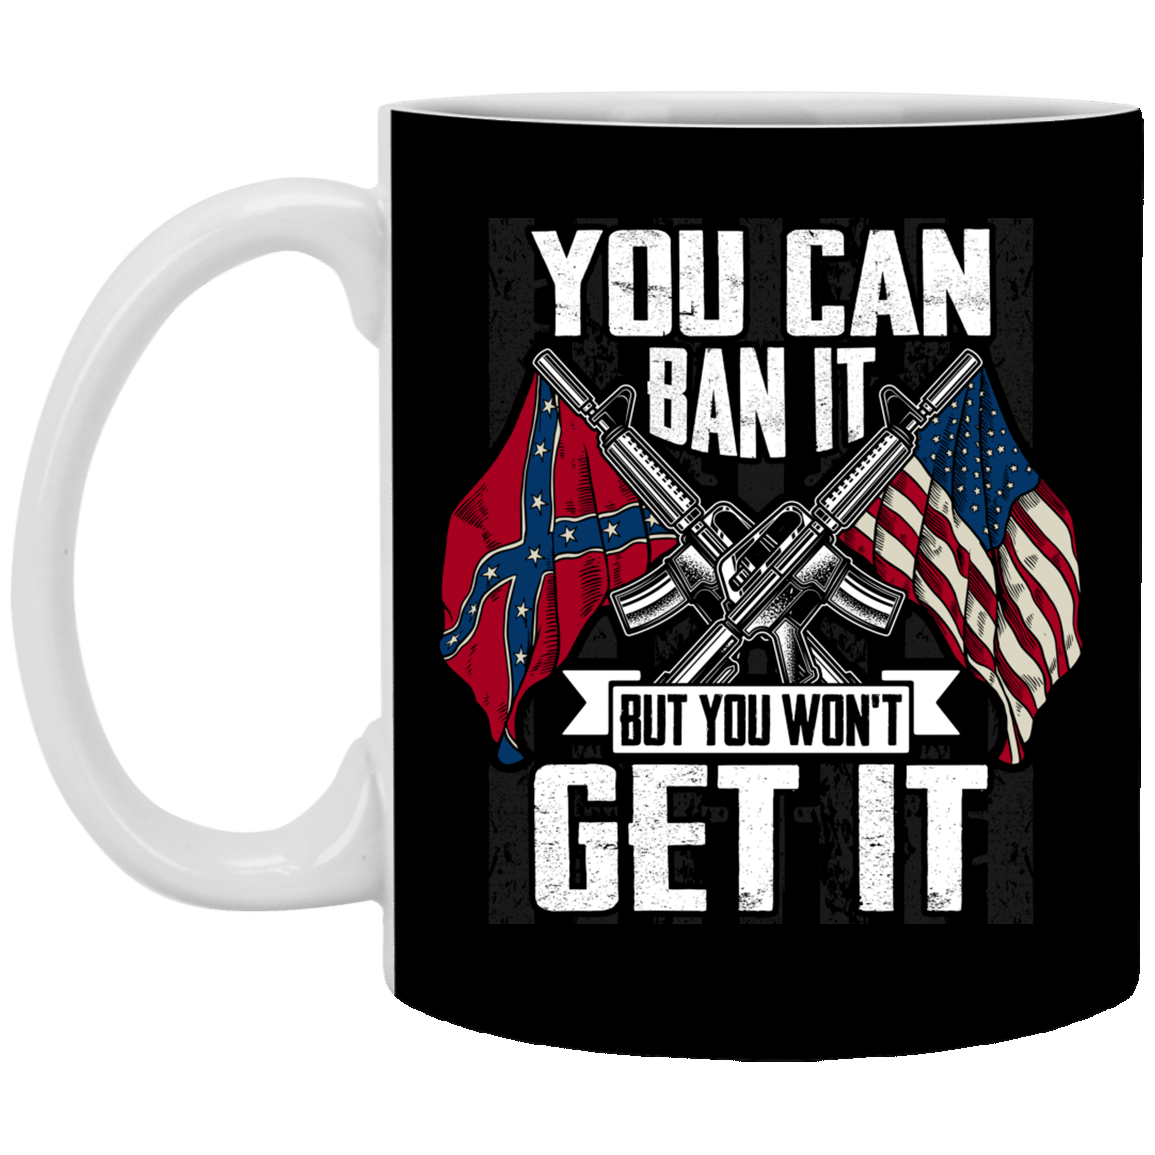 you can ban it but you won t get it american confederate flag ceramic coffee mug water bottle